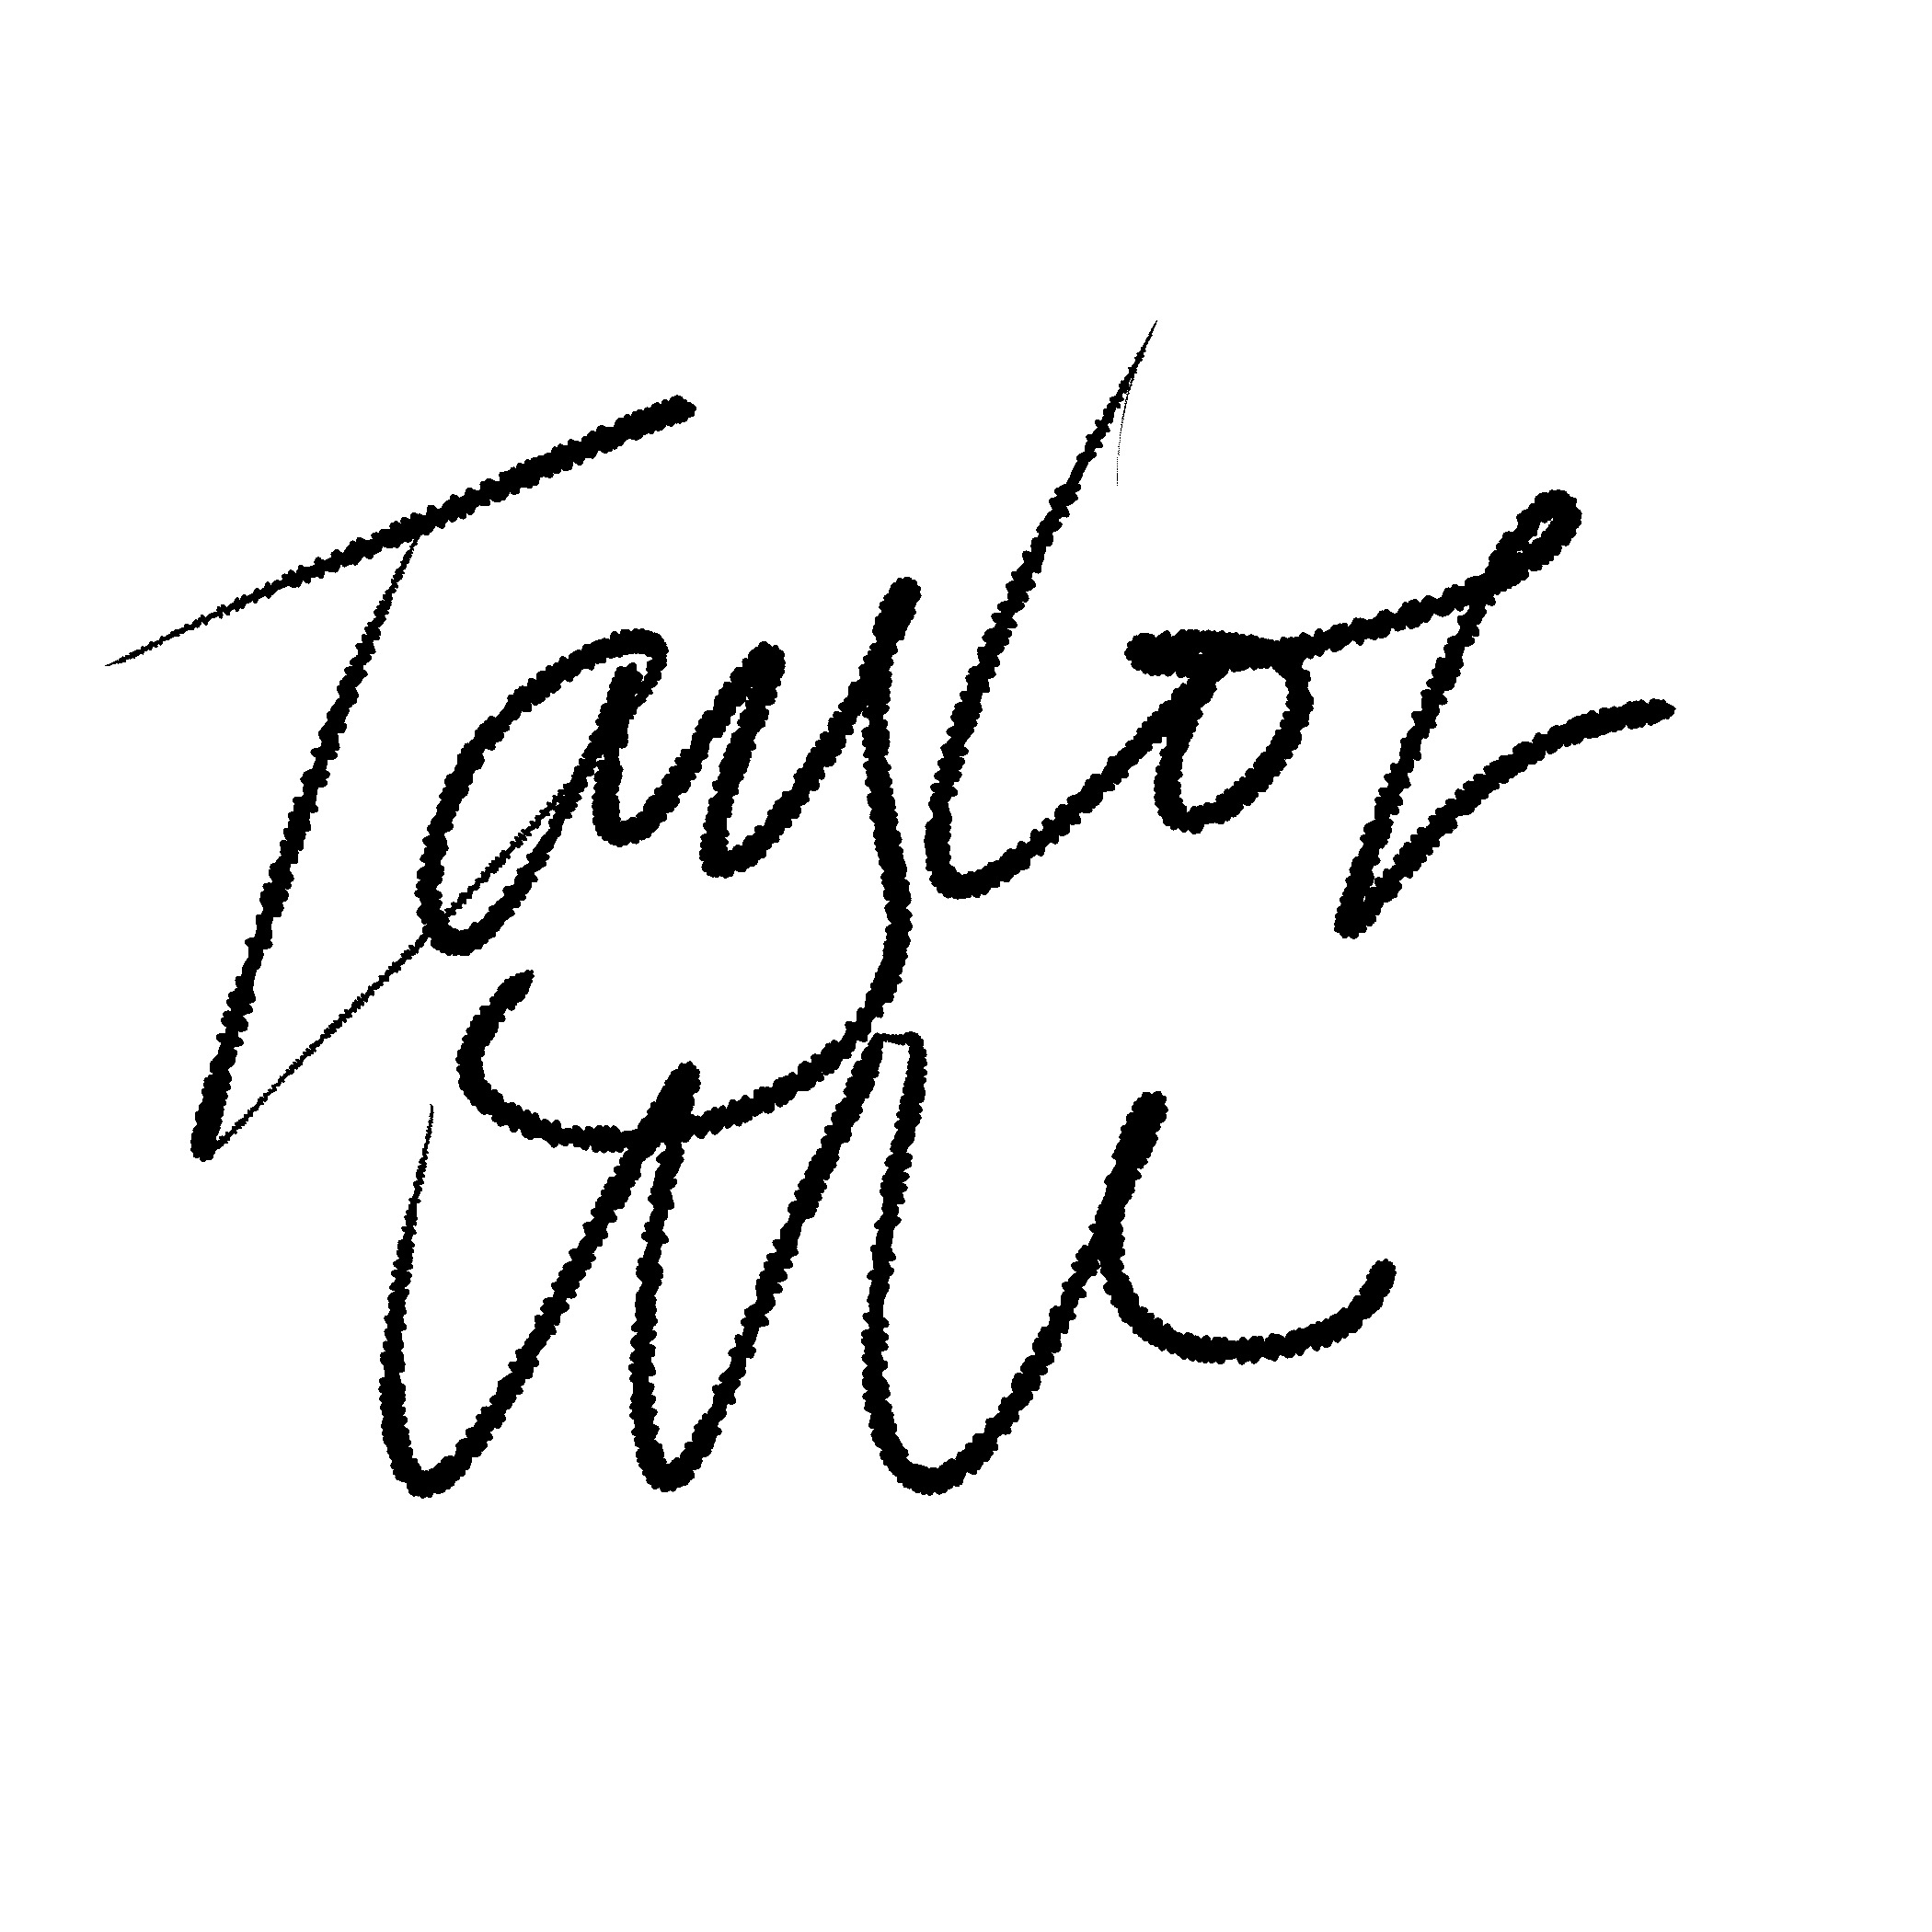 taylor wu's Signature